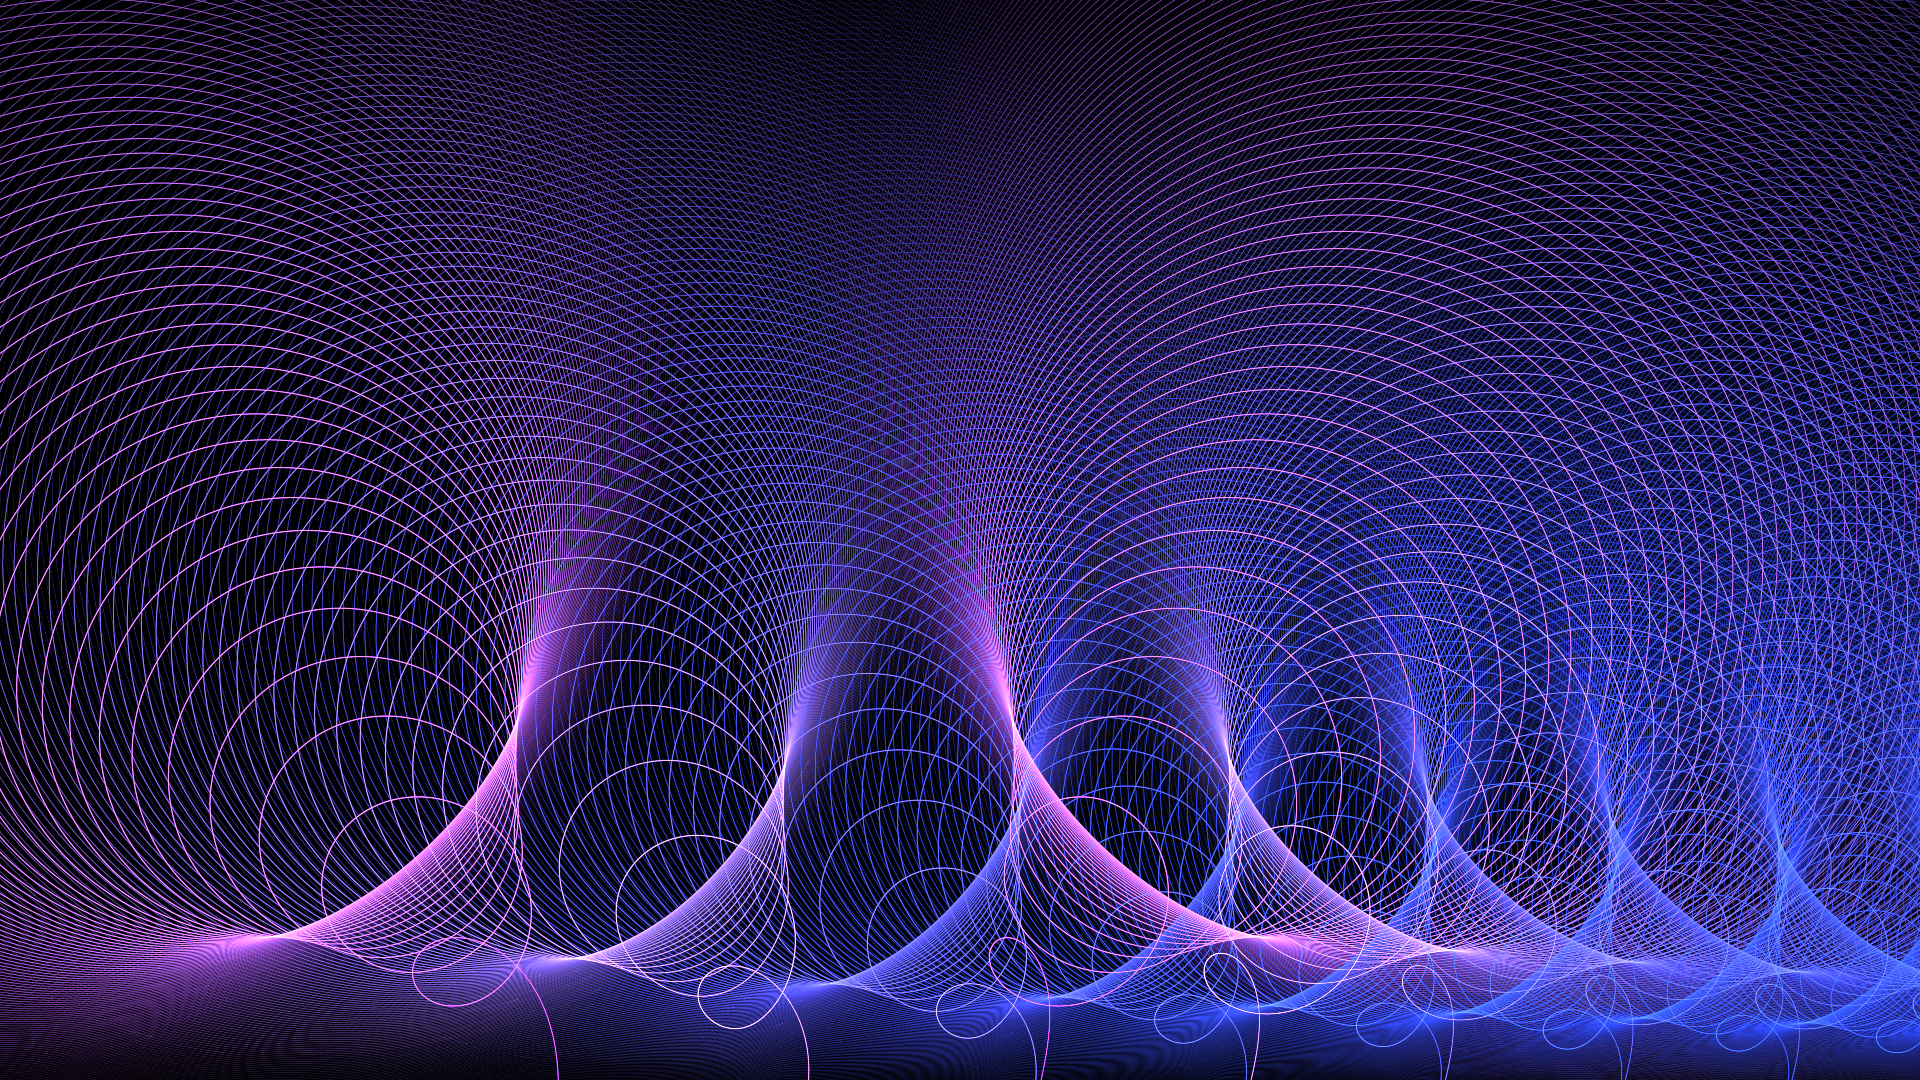 Abstract - Purple  Wave Artistic Fractal Science Energy Wallpaper